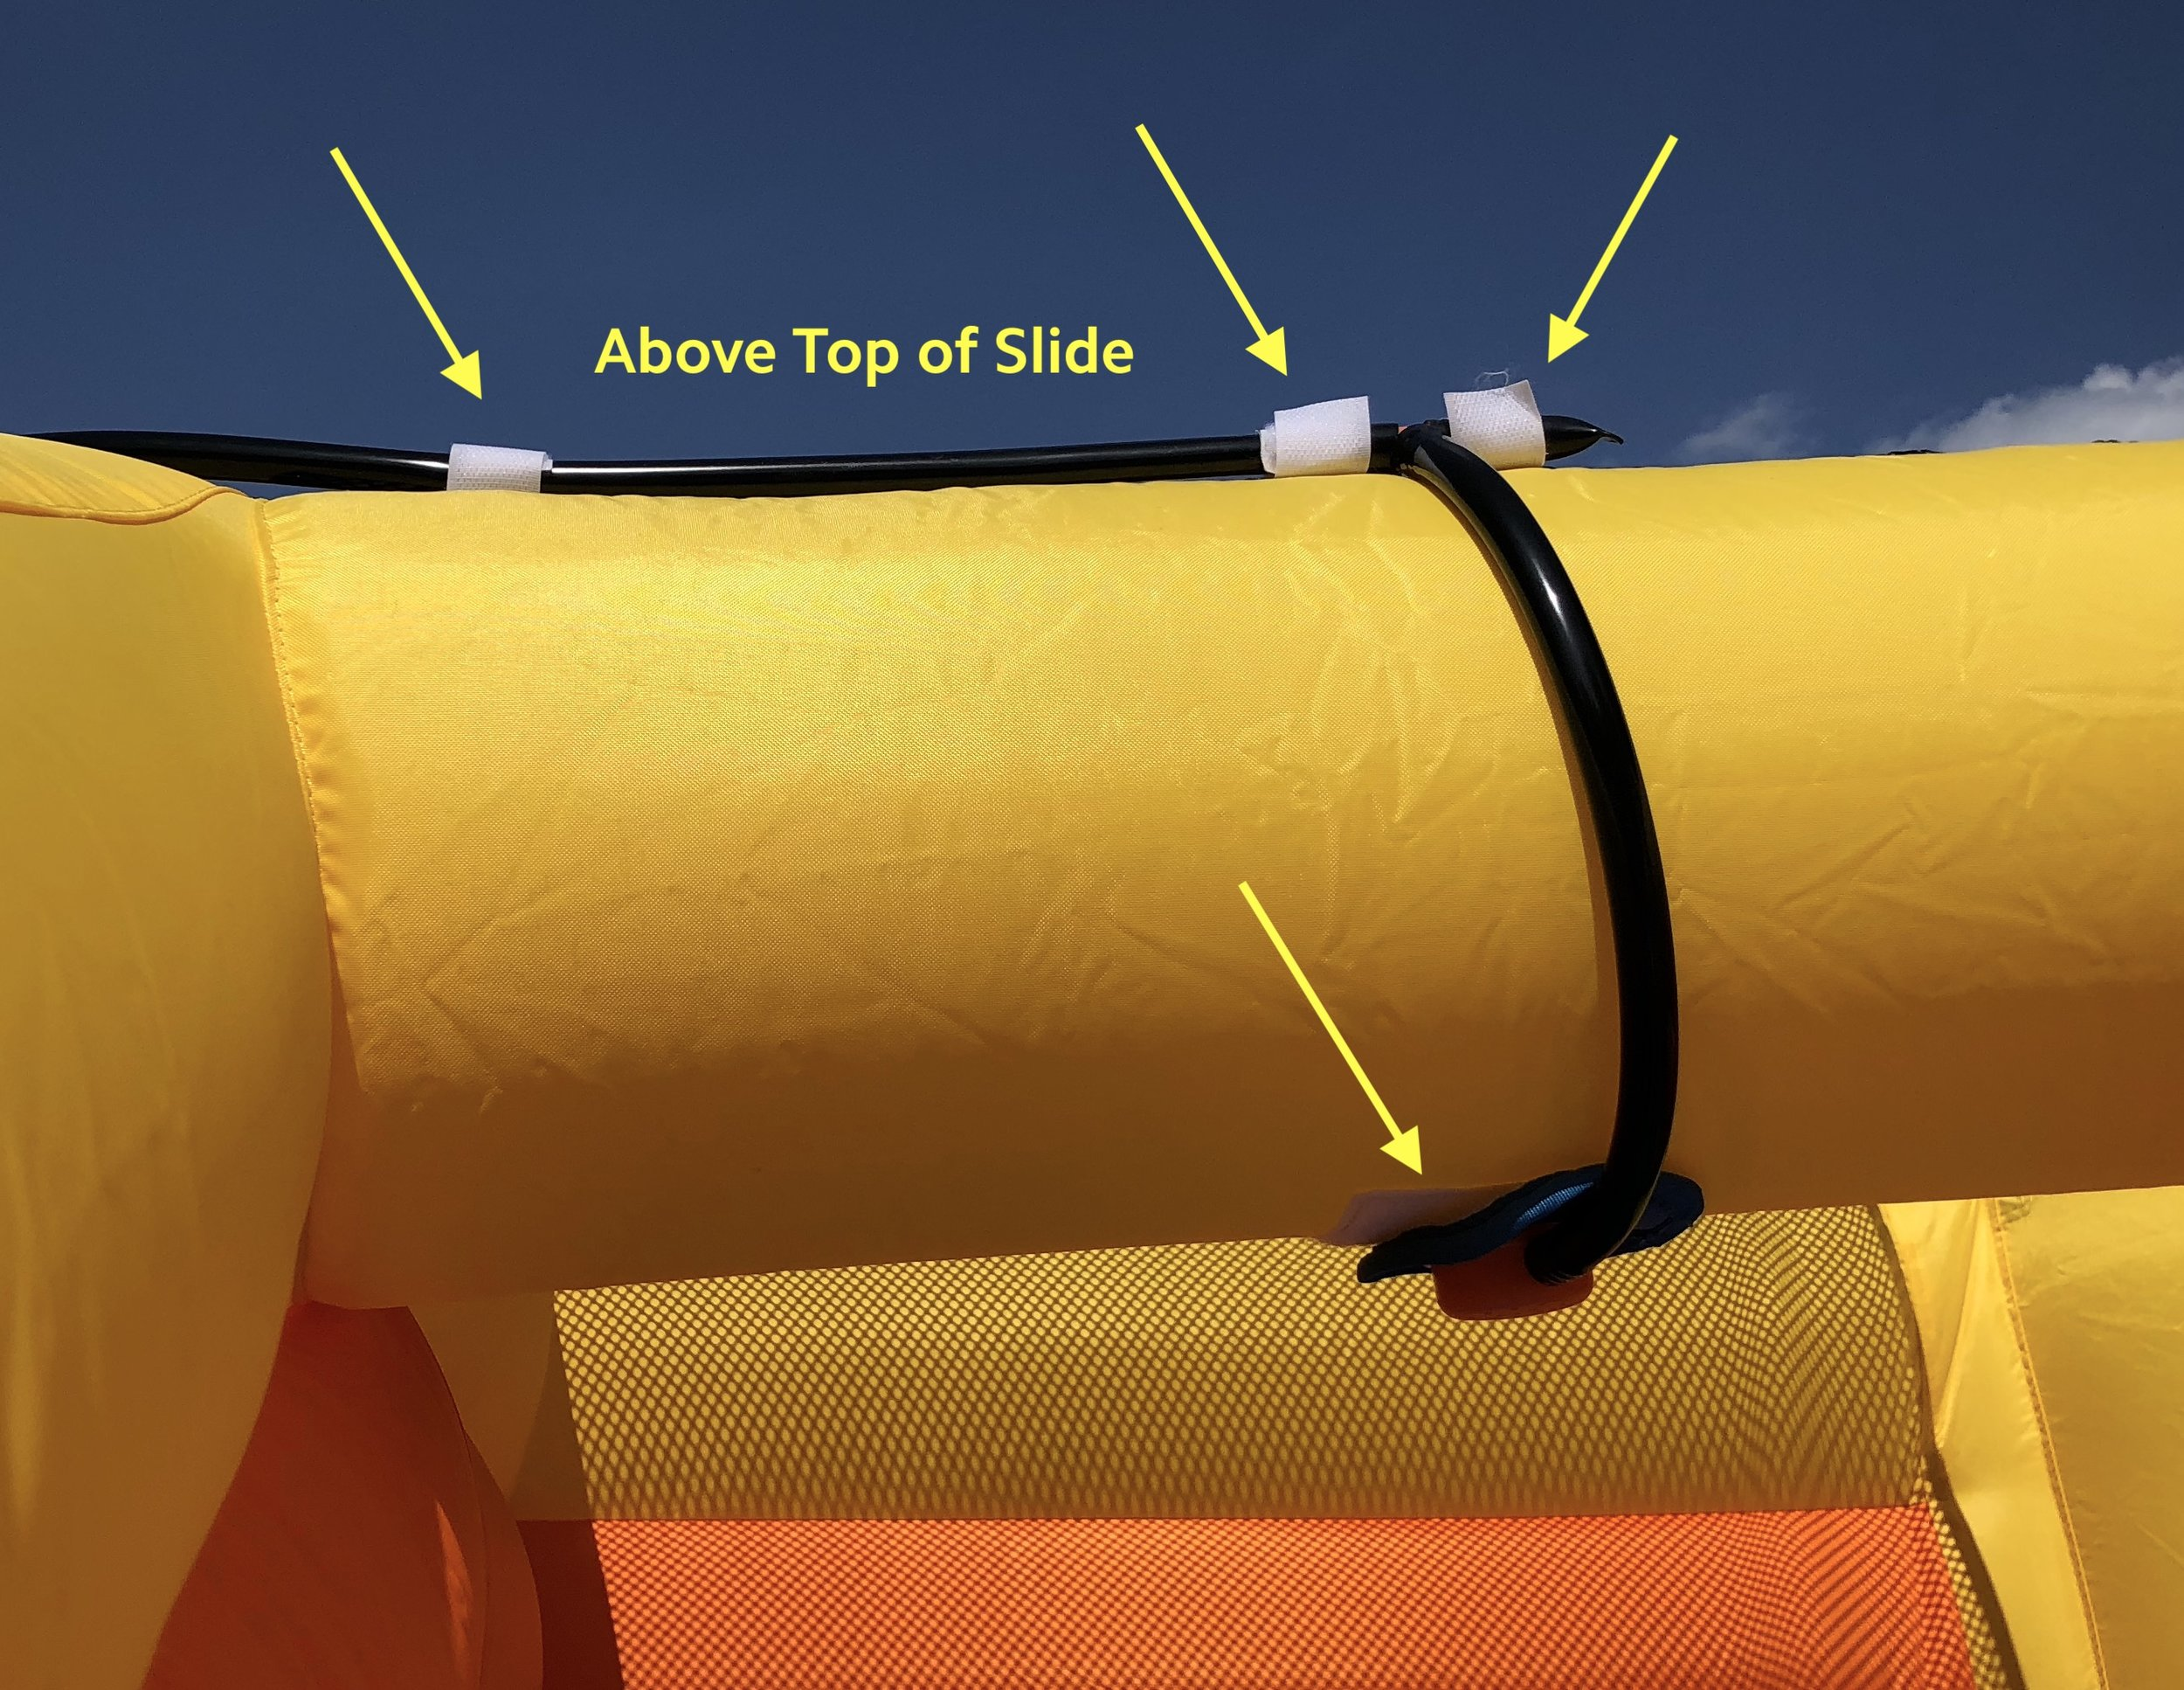 8a. Attach the sprinkler above the top of the left slide using Velcro.  Secure the hose using the additional Velcro straps.